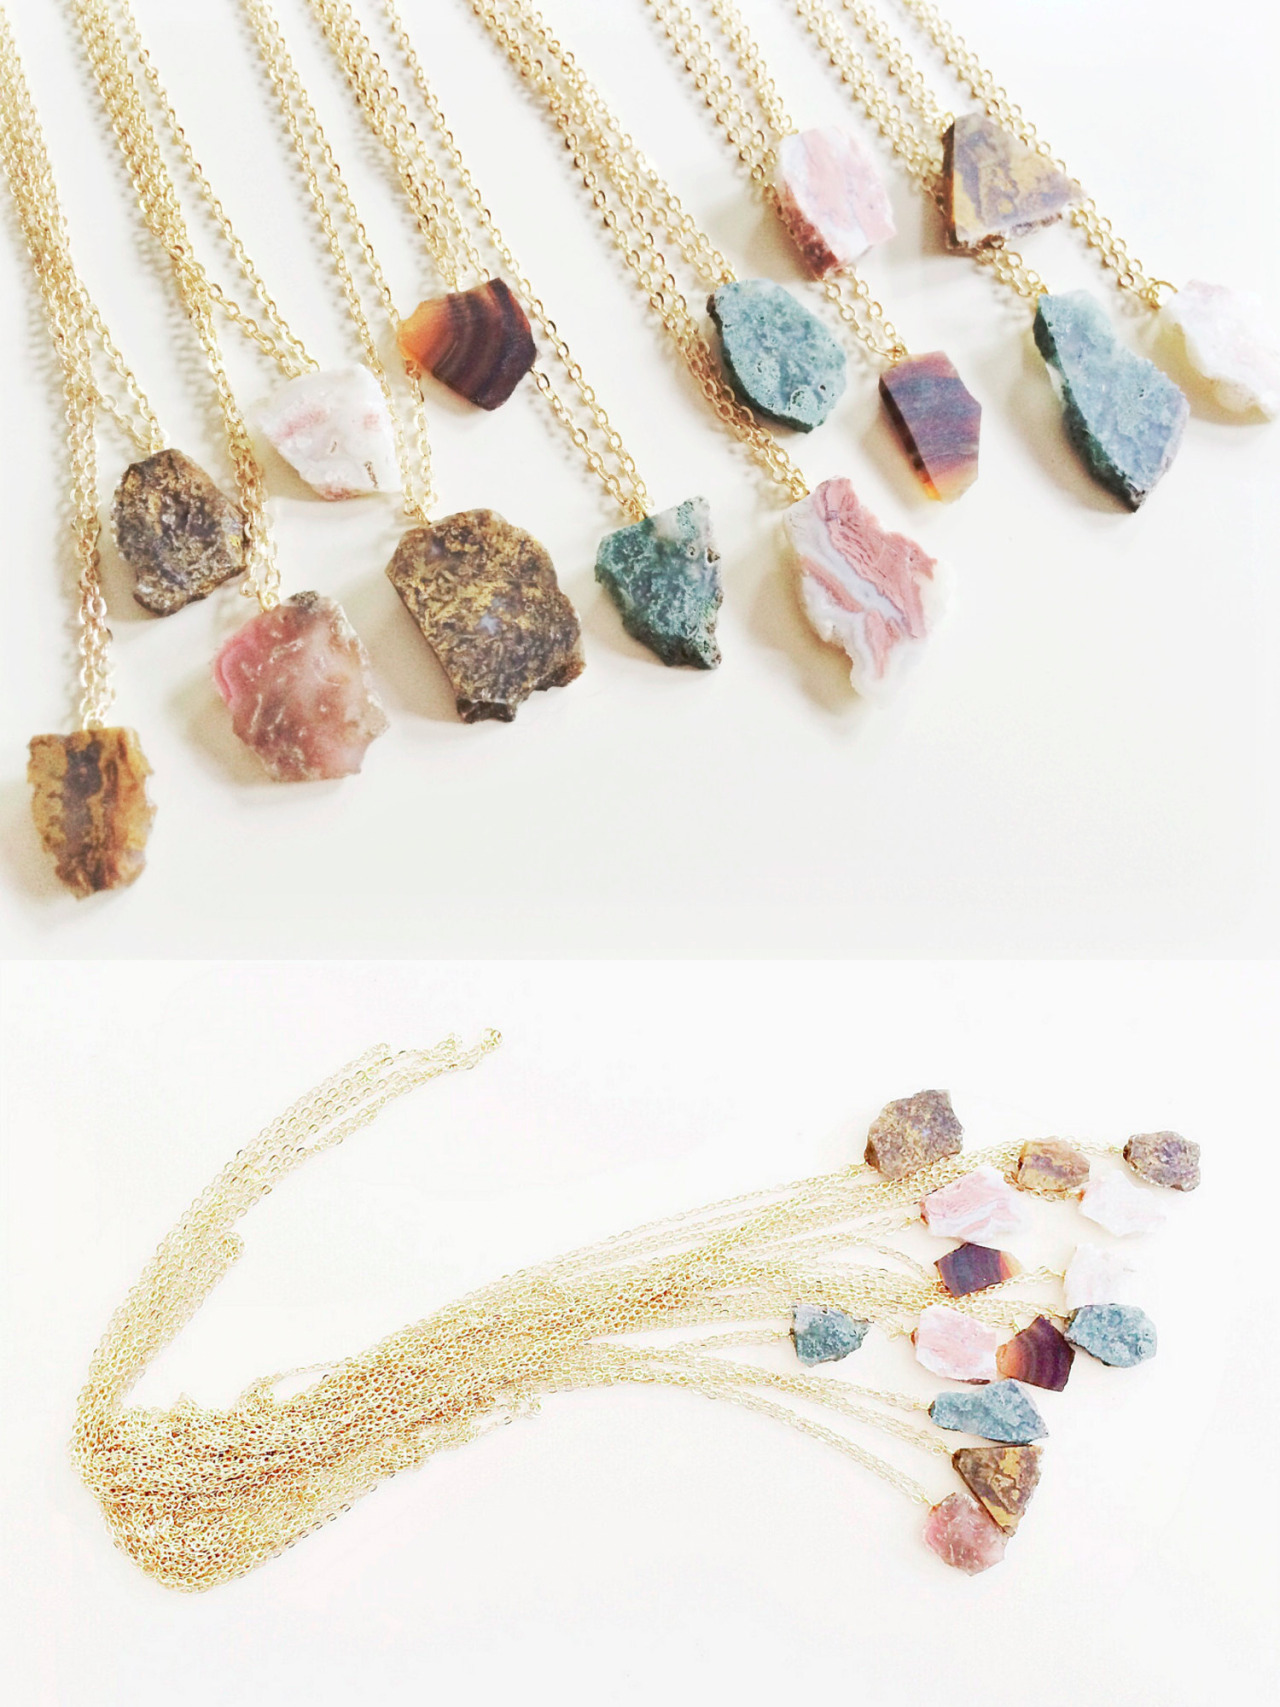 etsyfindoftheday:  etsyfindoftheday | EVENING EXTRAS 3 | 8.27.14 rough stone slab necklace by compositeshop  GAH. i want ALL of these rough stone slab necklaces … and the rest of compositeshop's rad jewelry offerings. be mine, all you lovely boho rockstars!